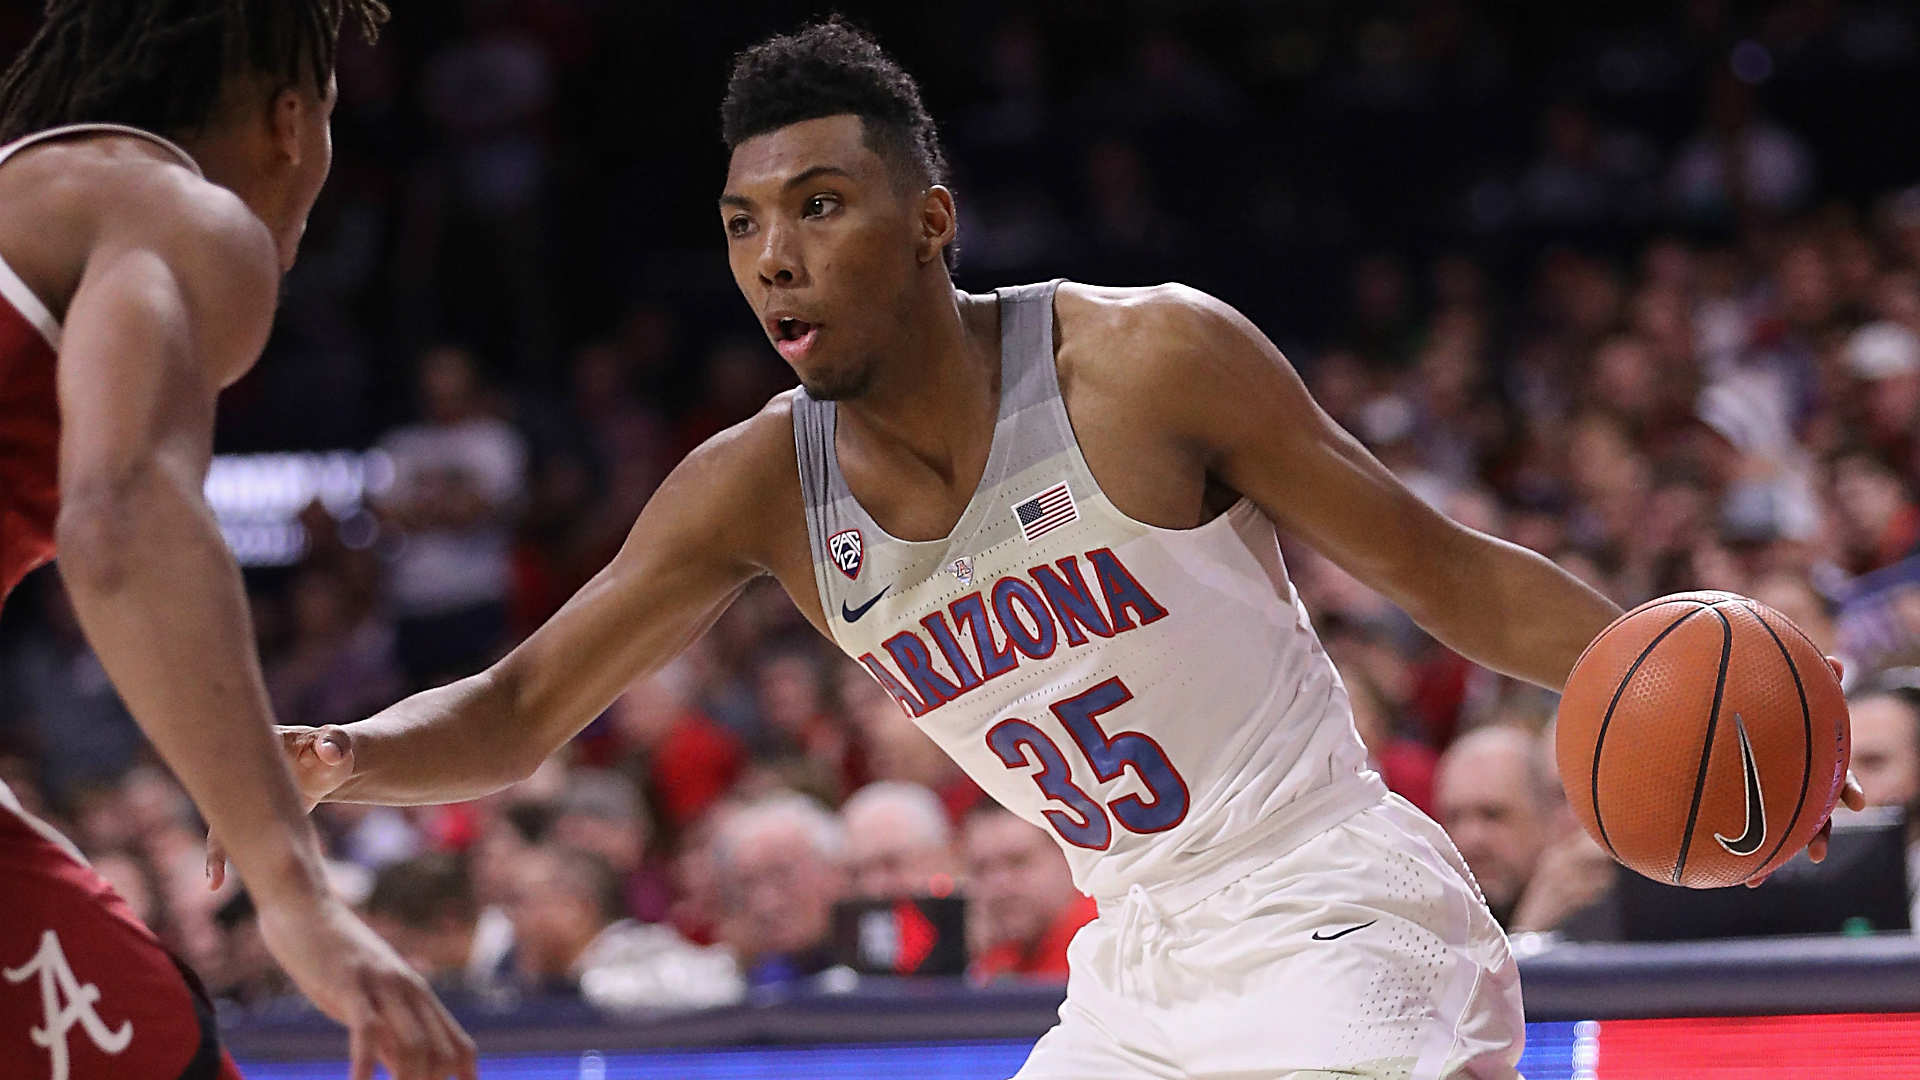 Allonzo Trier Declared Ineligible by NCAA; Arizona Appealing Decision